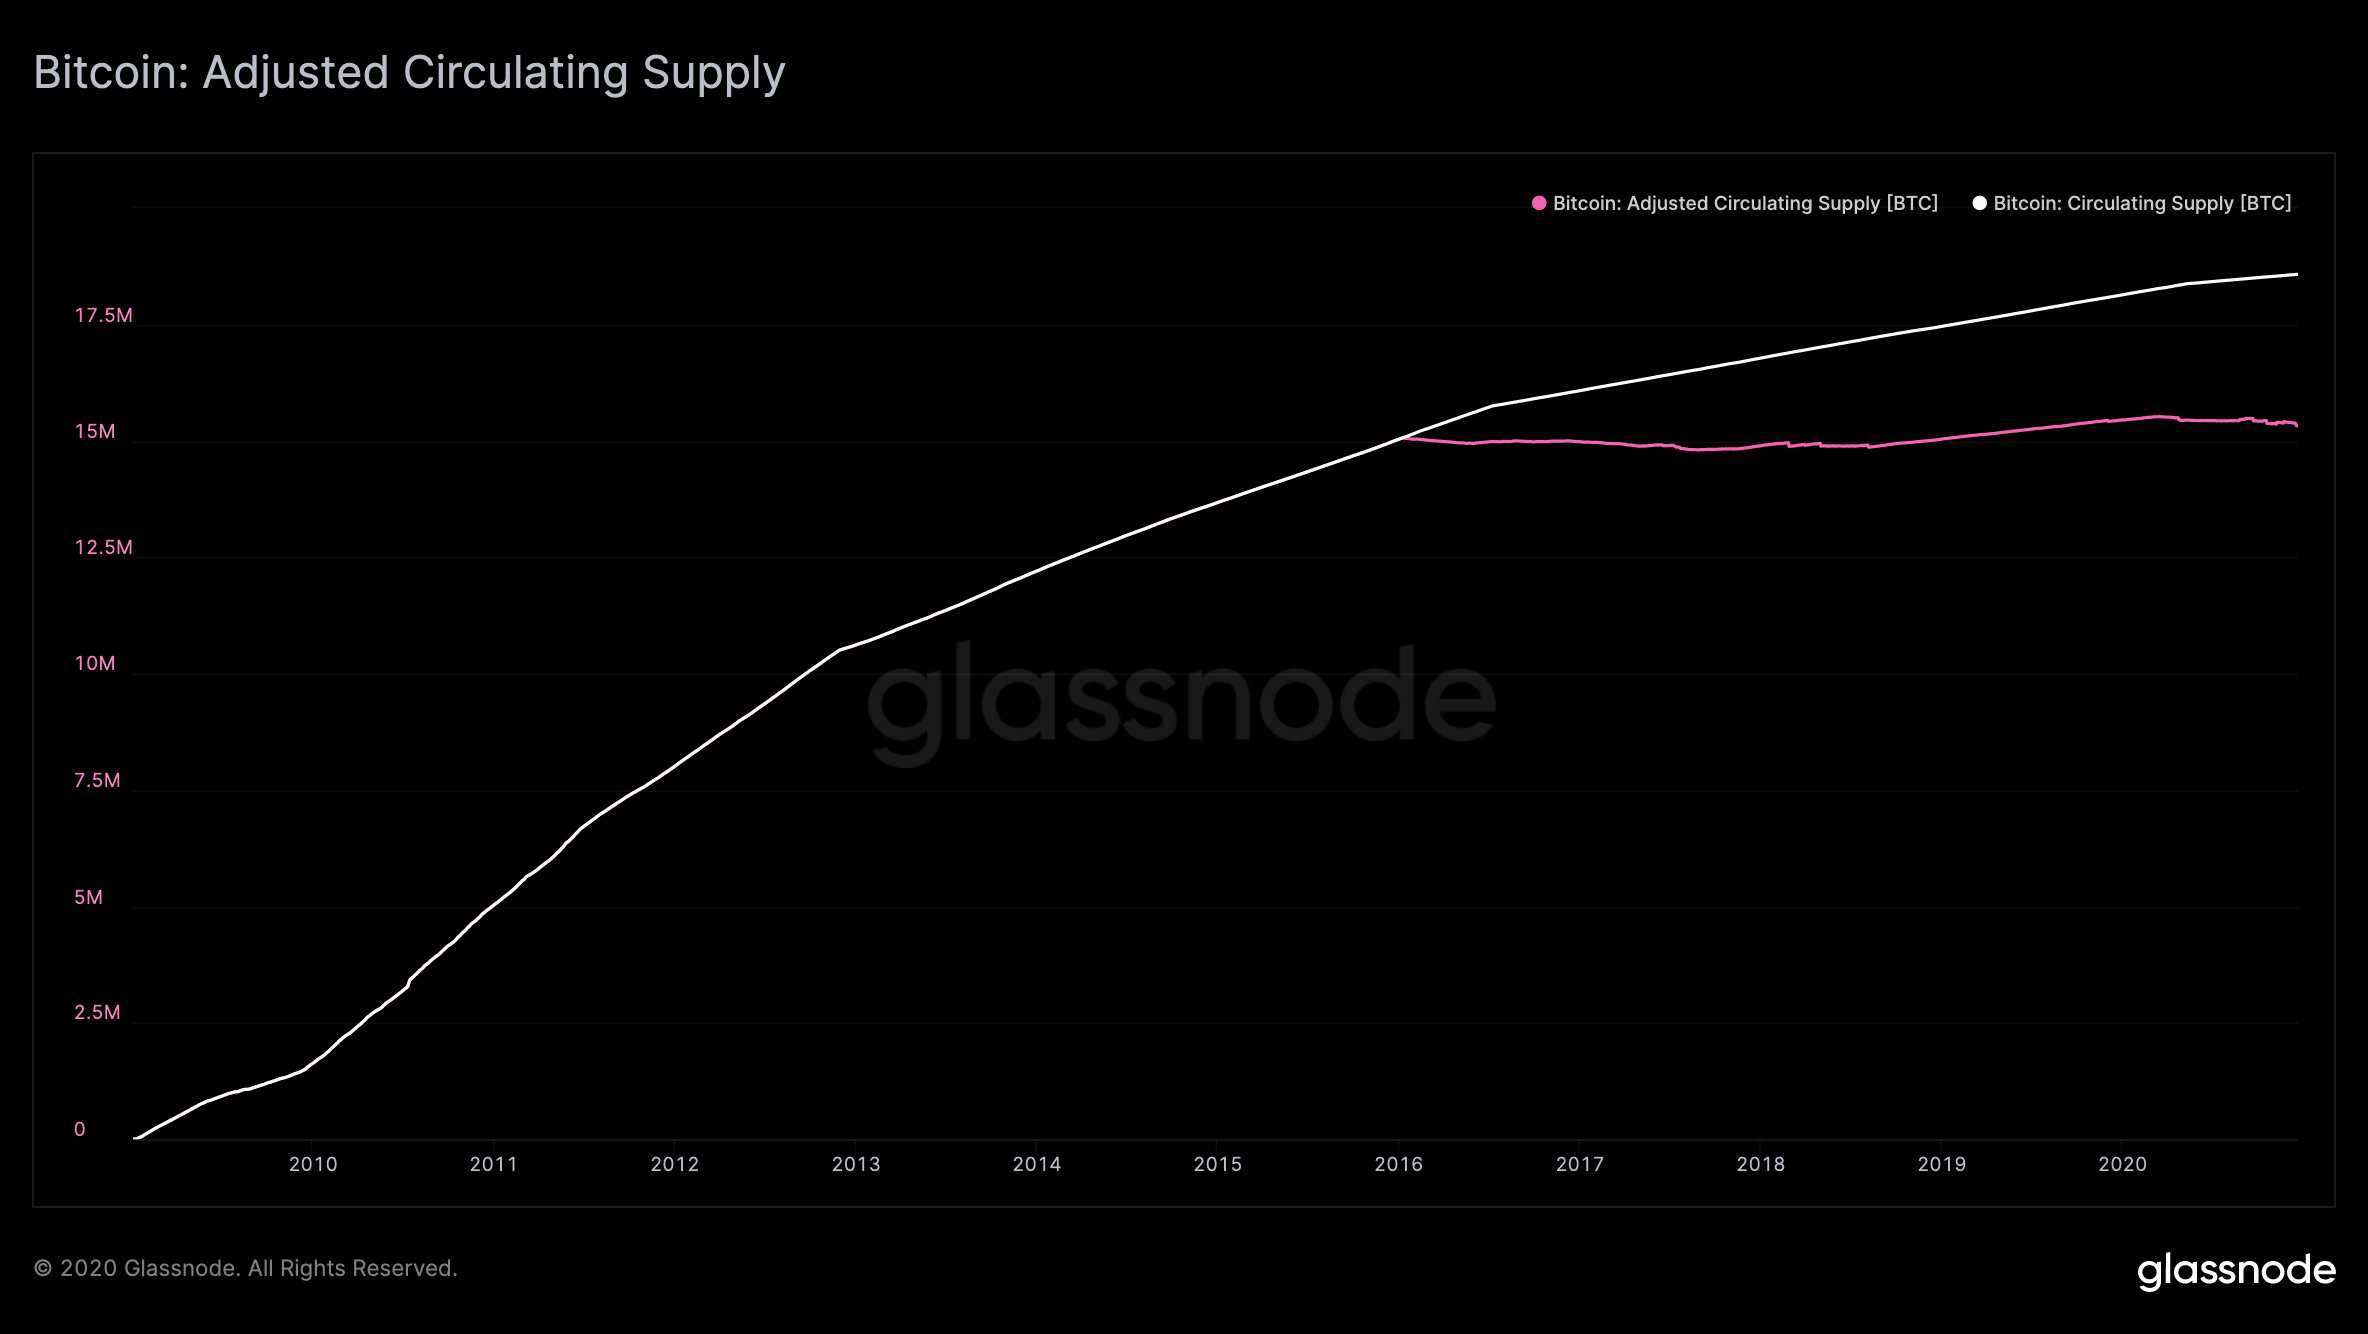 Bitcoin Adjusted Circulating Supply. Source: Glassnode